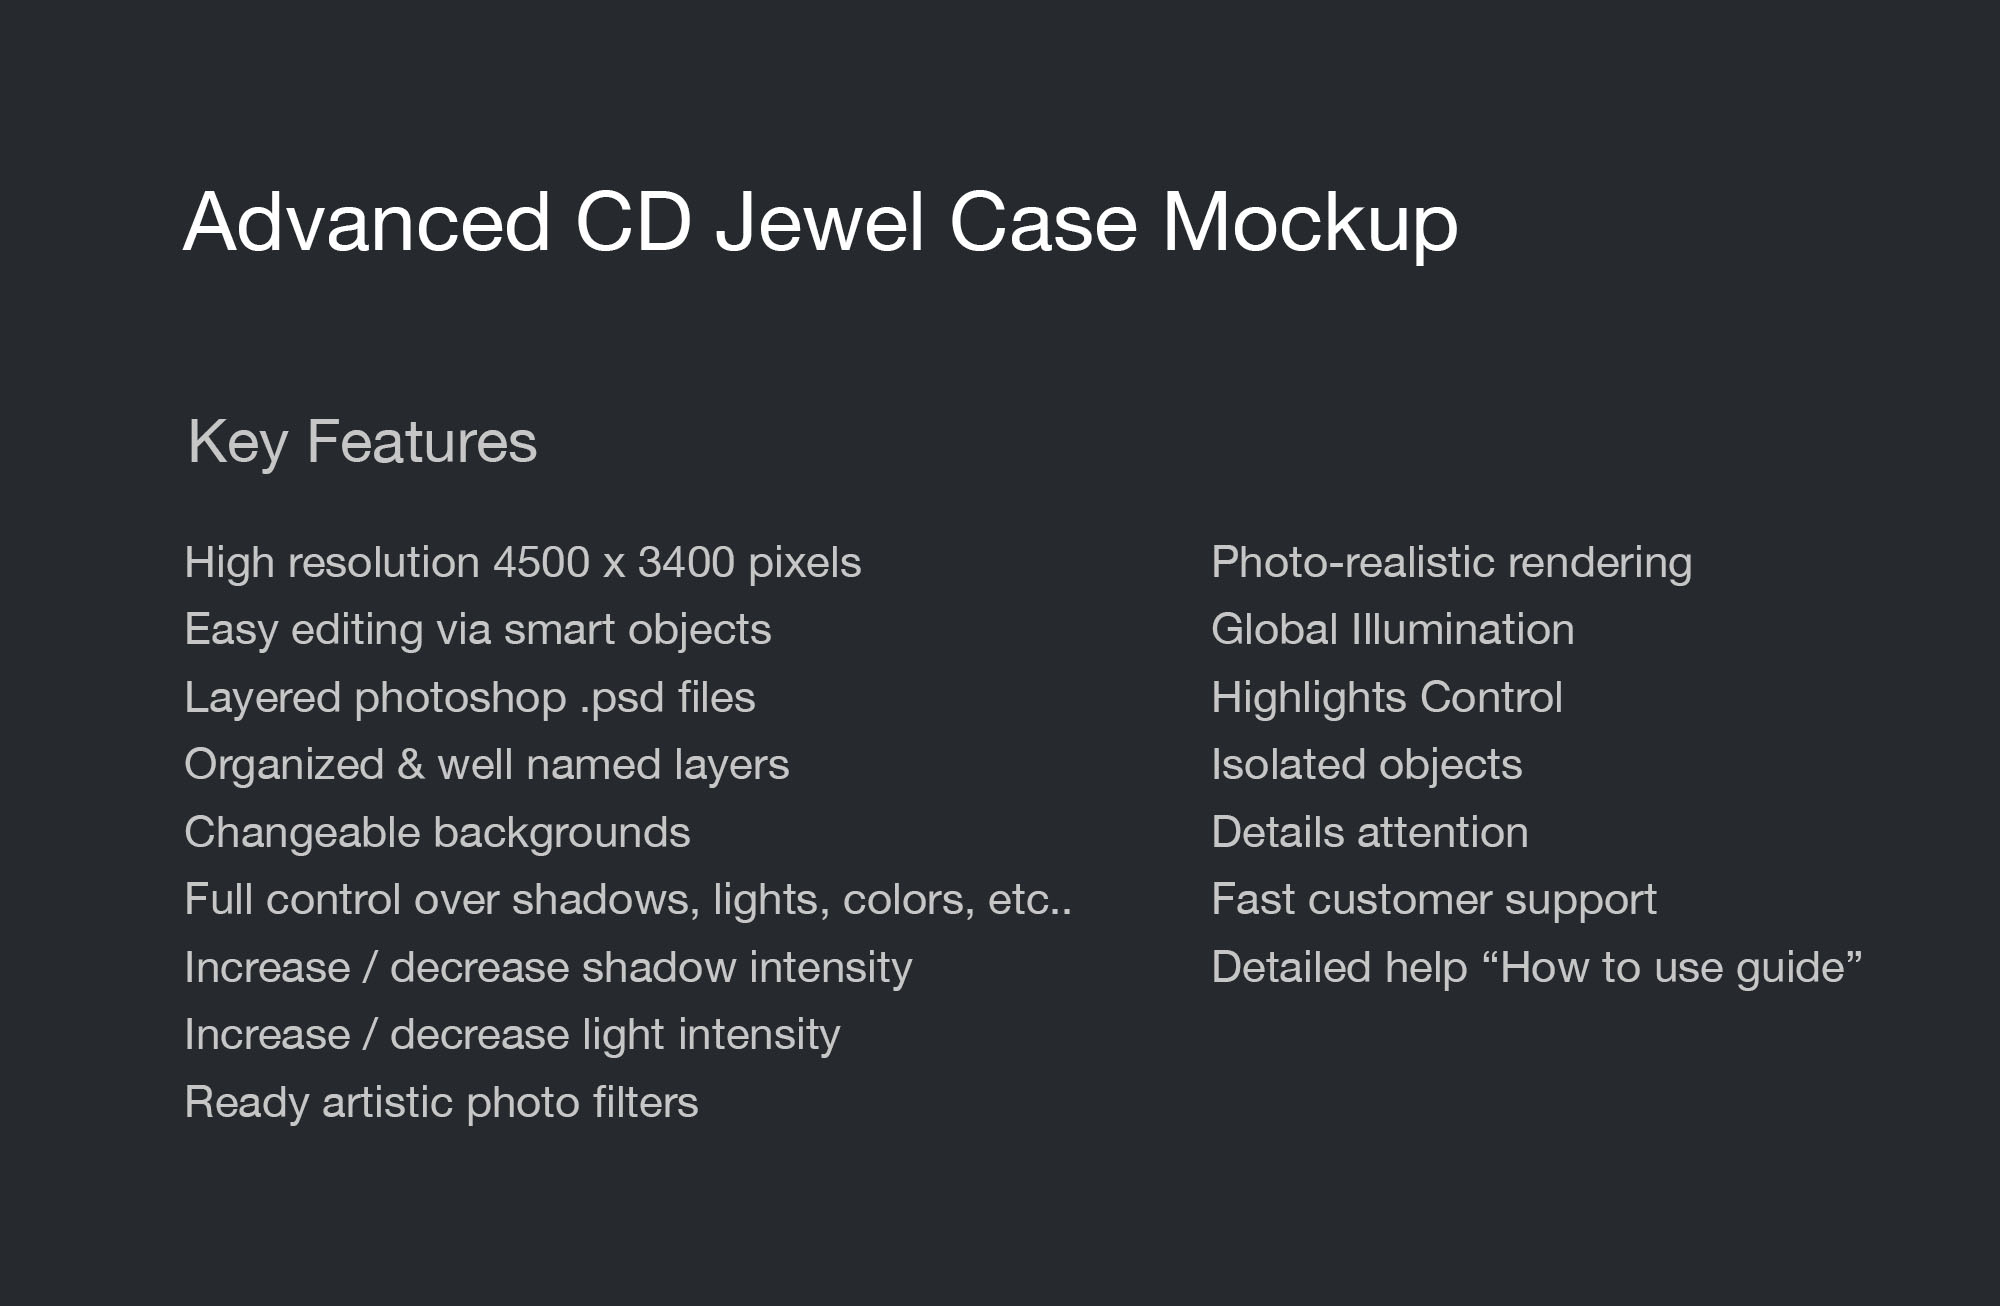 CD Jewel Case Mock-Up info